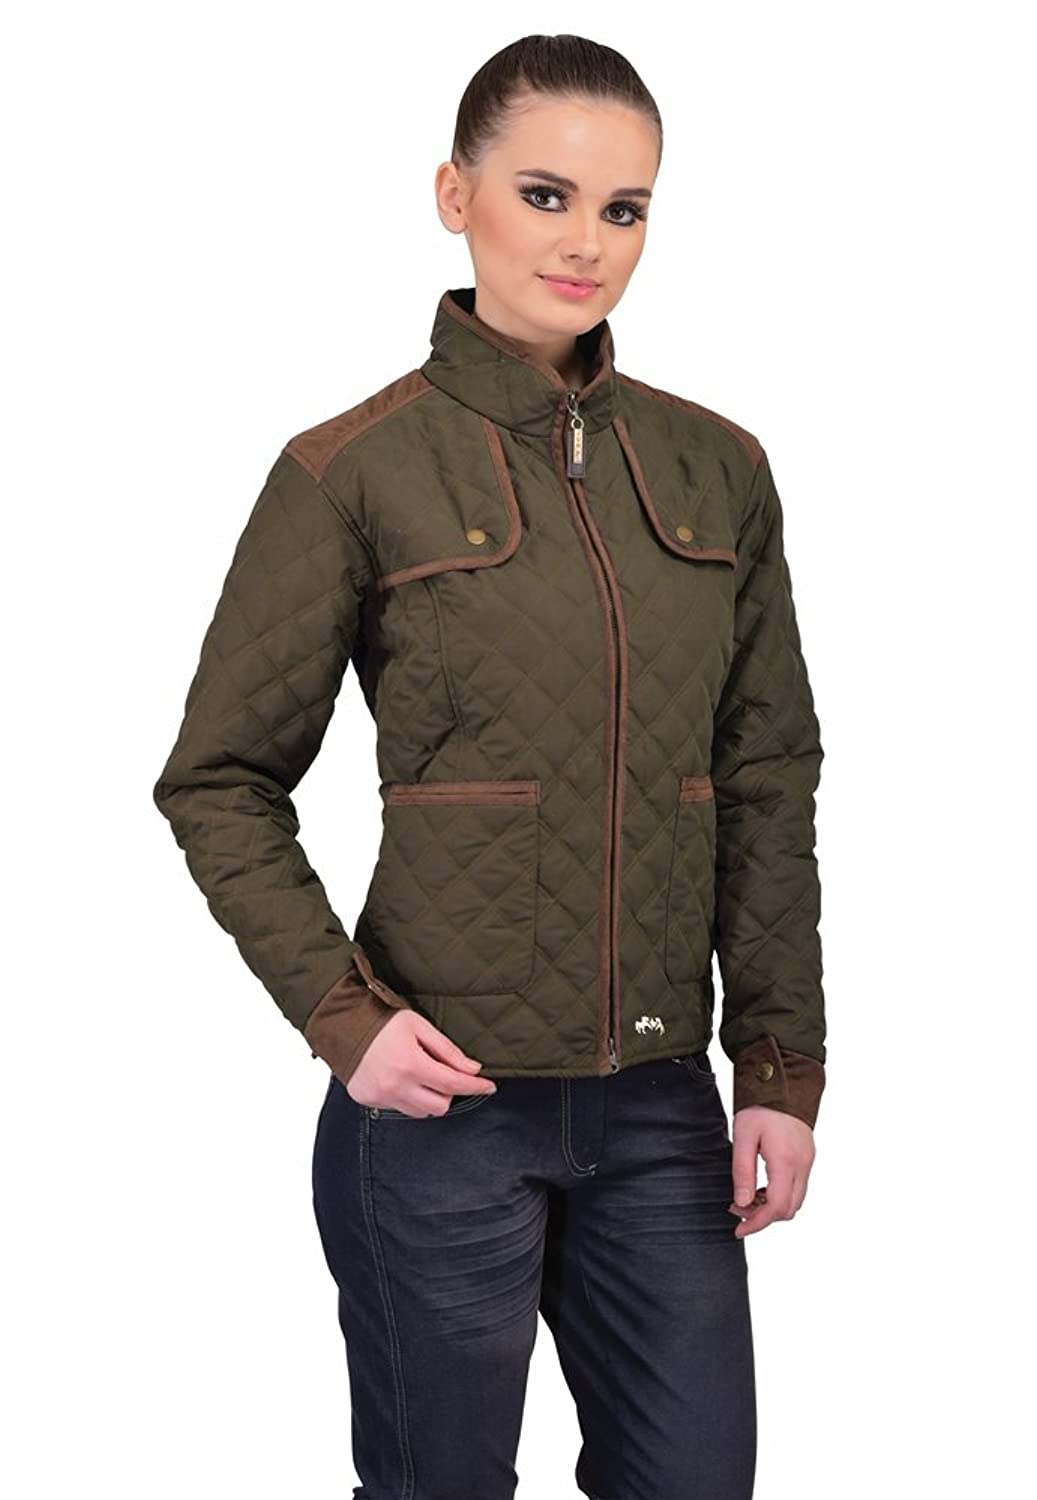 92e4f59bfd Made from lightweight quilted Micro Polyester, our Equine Couture ladies  jackets are the perfect layer to wear during chilly riding days during the  autumn ...